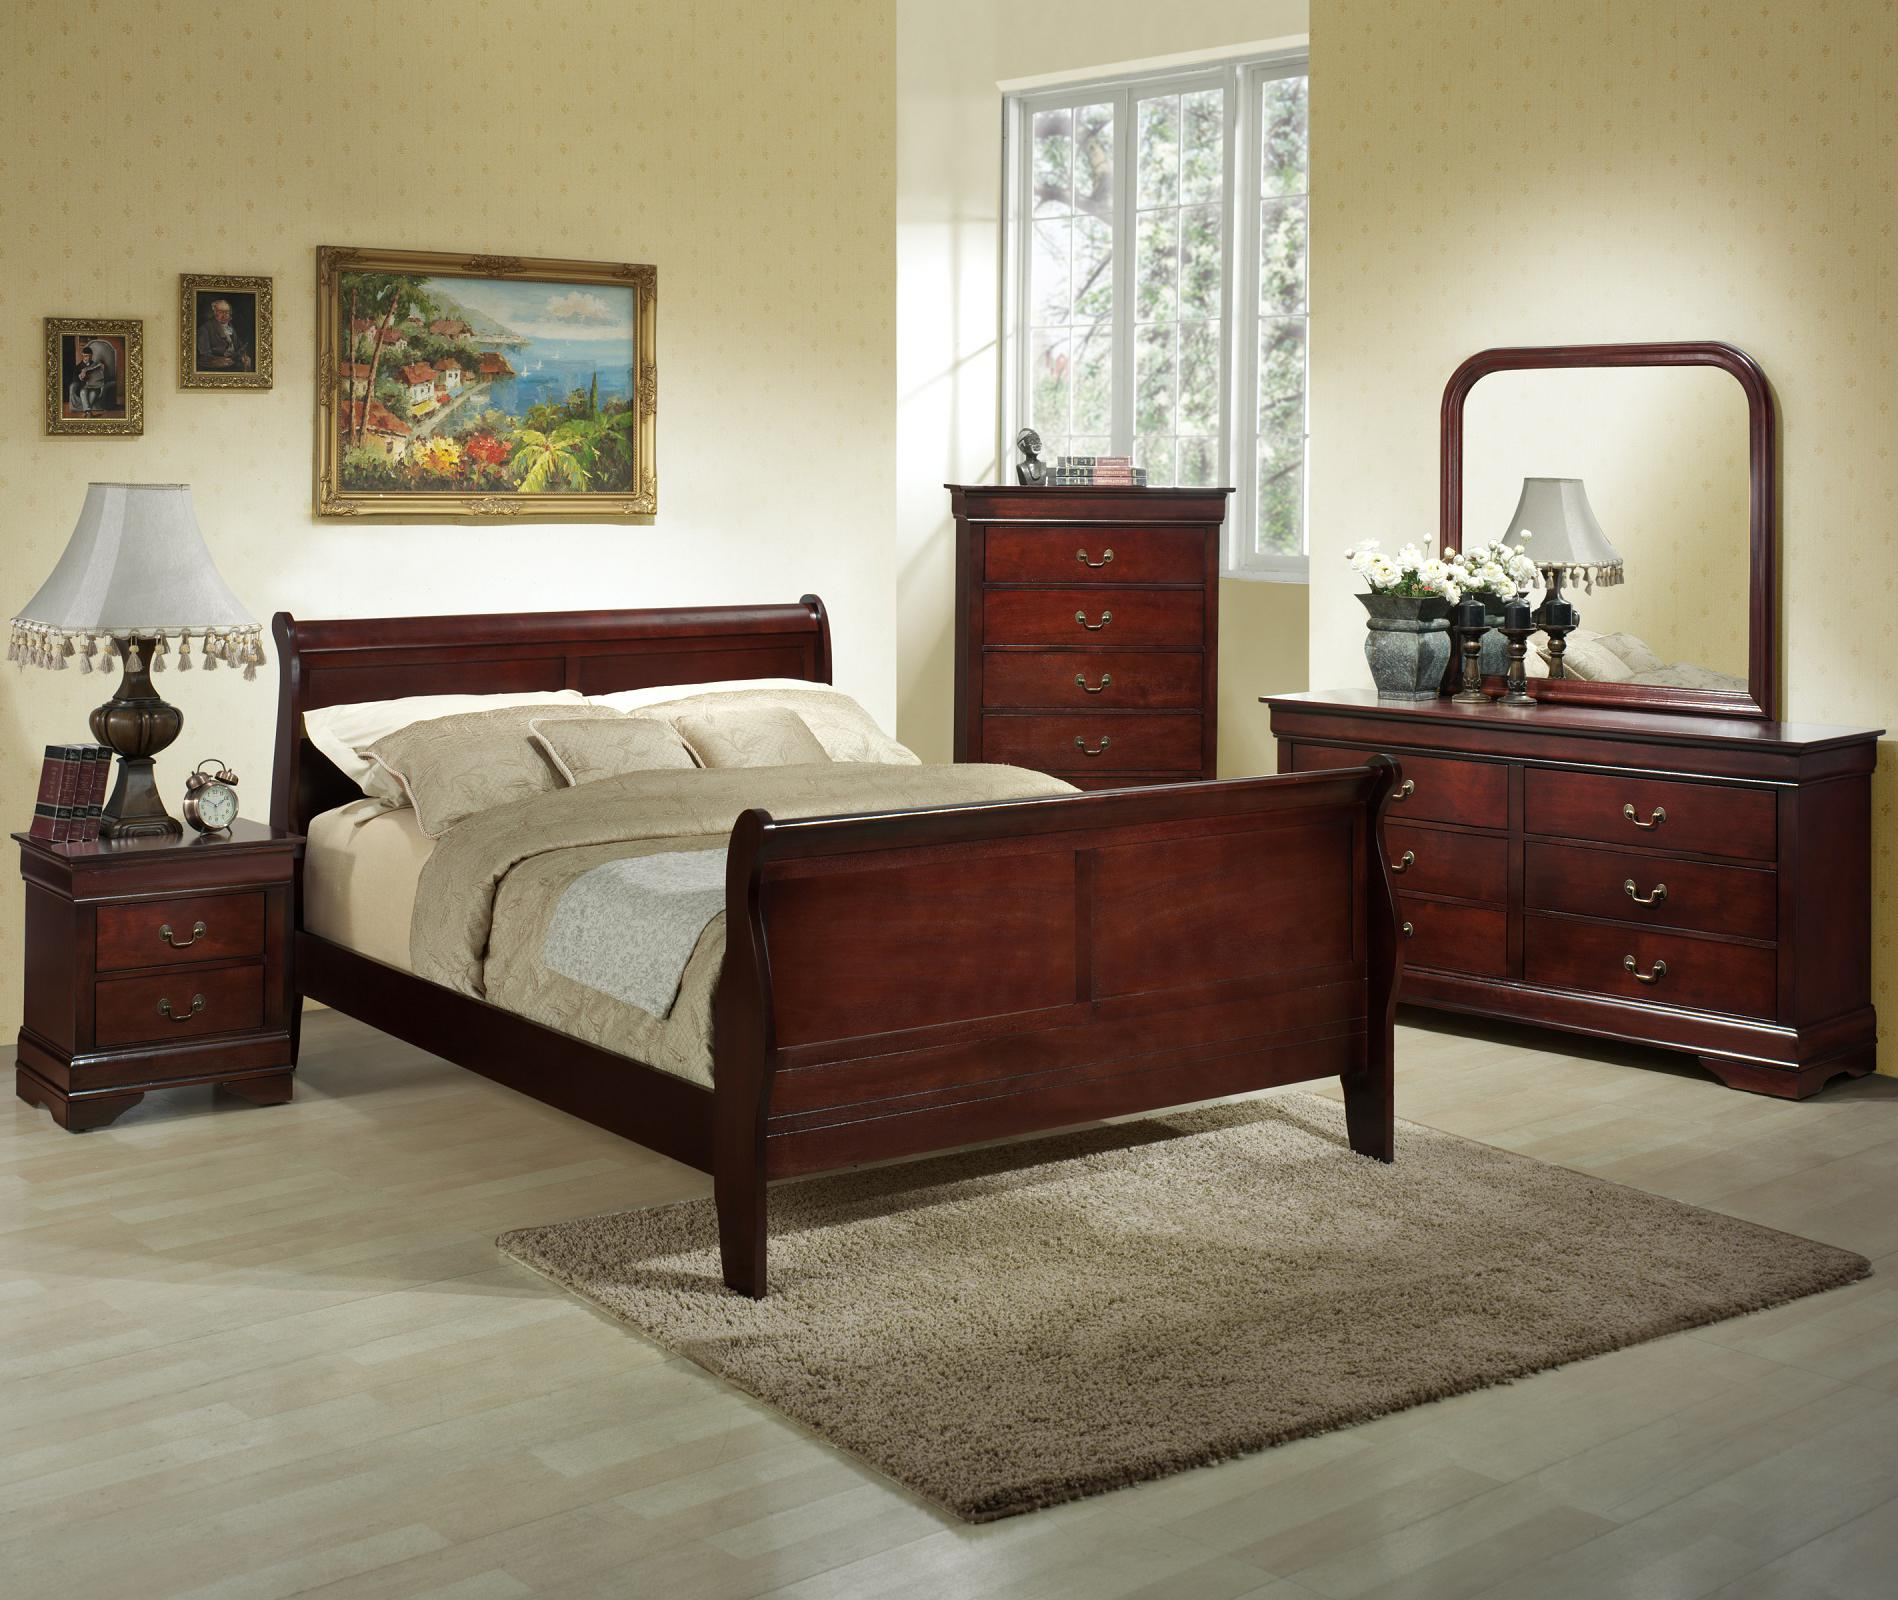 lifestyle louis phillipe full bedroom group royal furniture